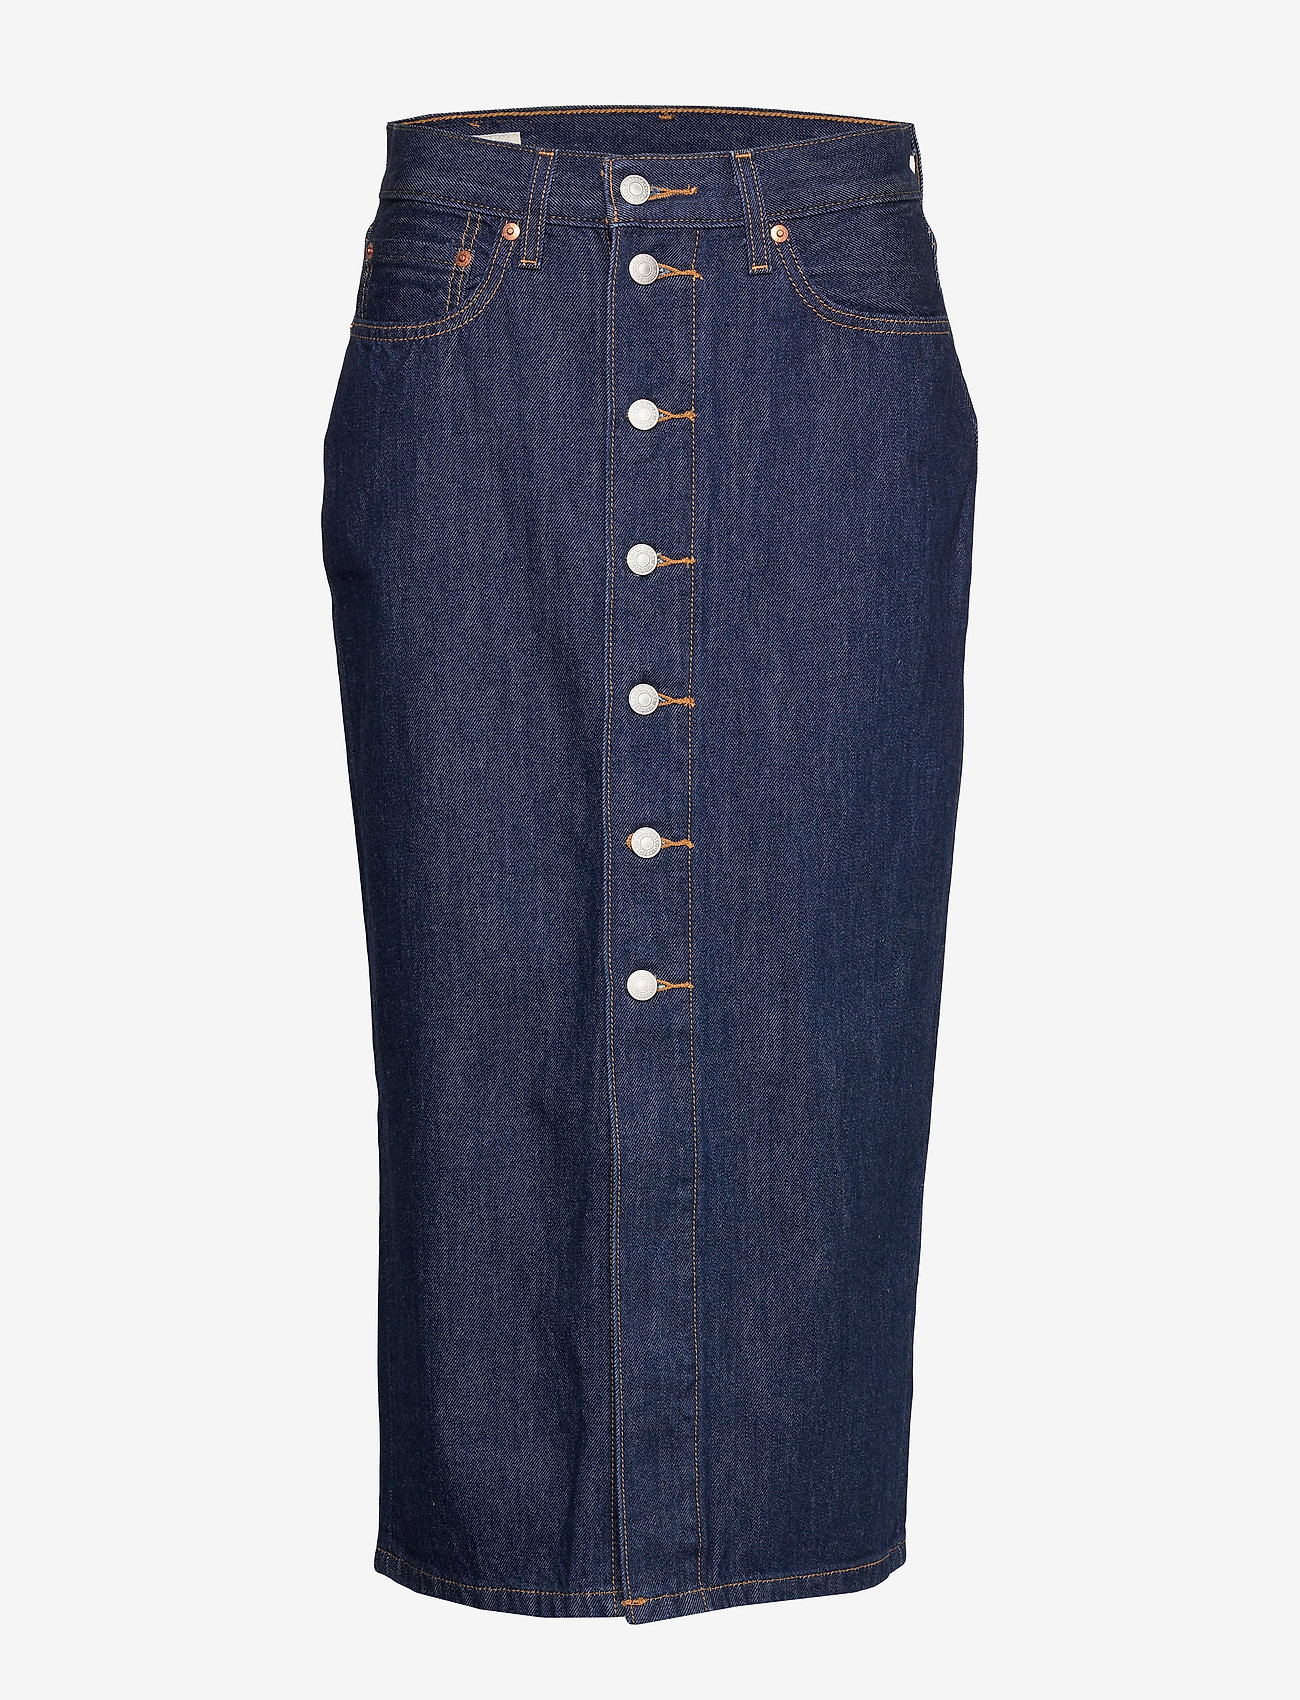 LEVI´S Women - BUTTON FRONT MIDI SKIRT JUNIPE - denimnederdele - dark indigo - flat finish - 0